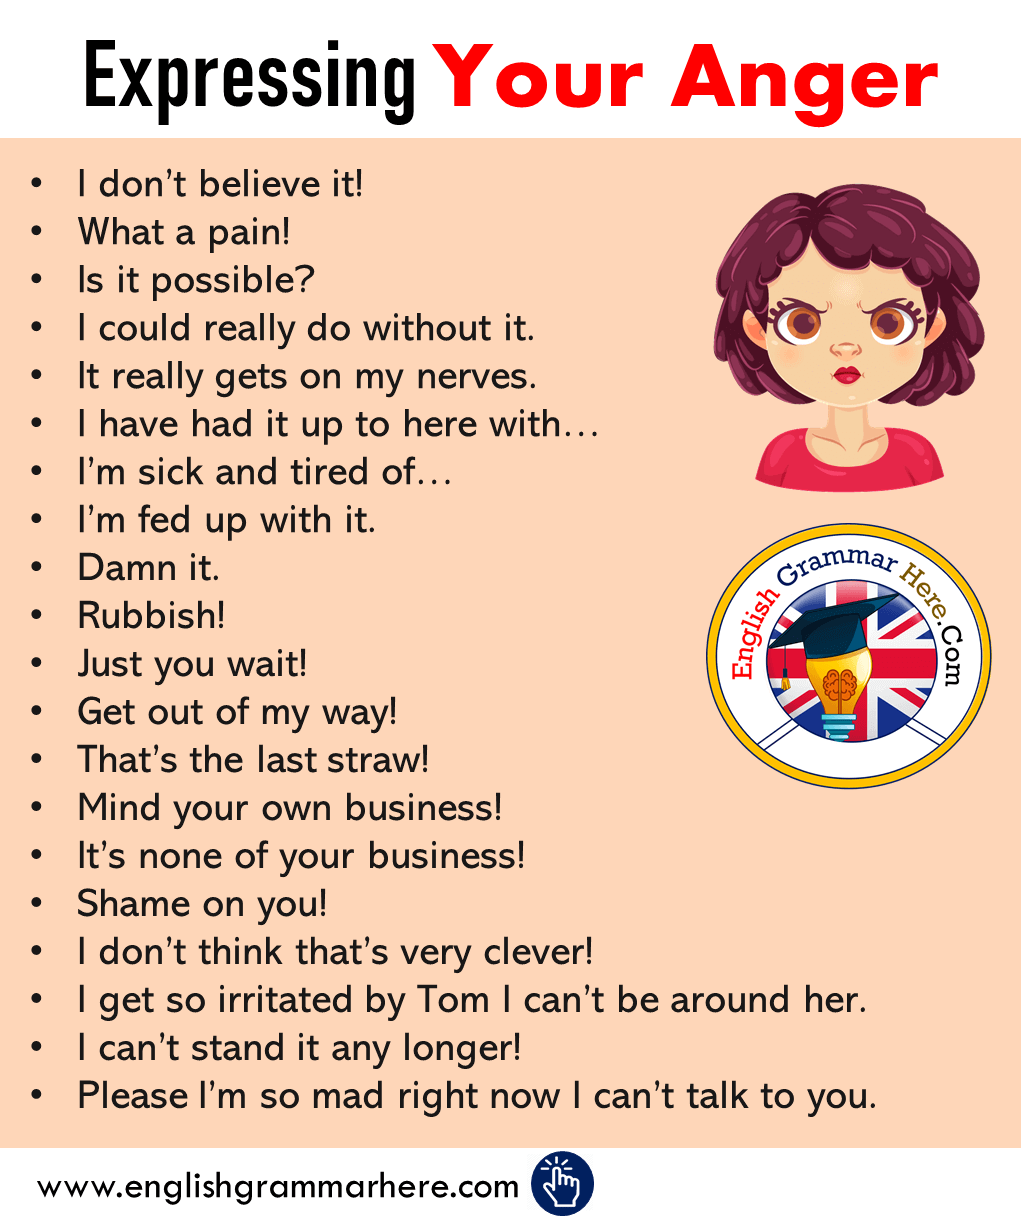 Expressing Your Anger in English, How to Express You Anger